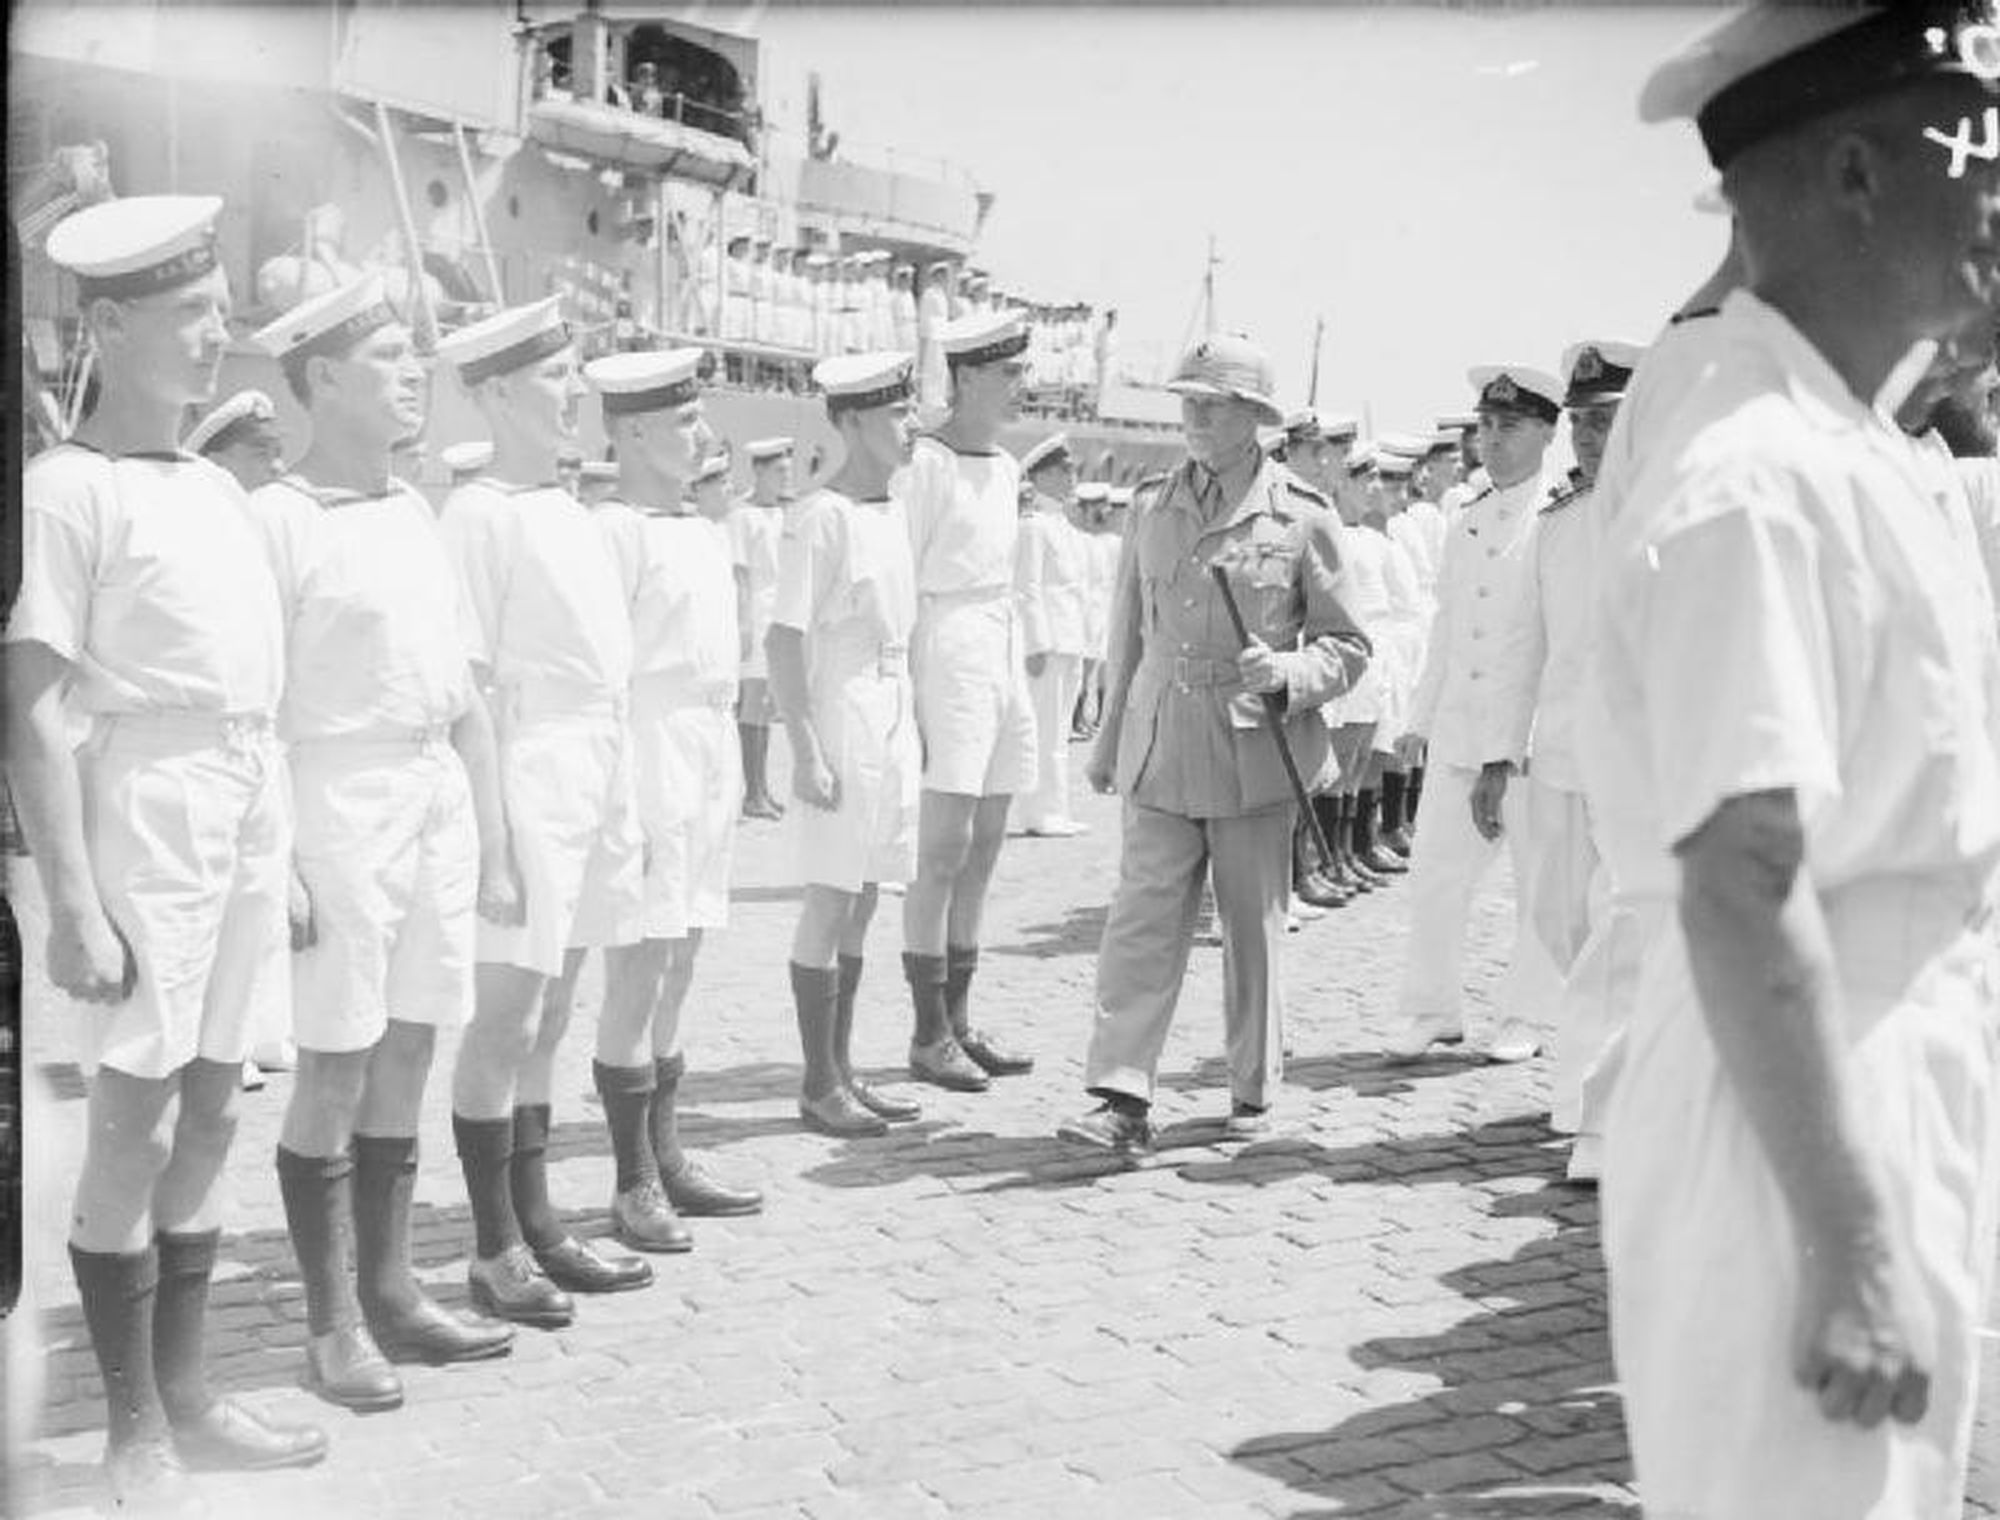 Field marshal smuts inspects south african sailors egypt 1942